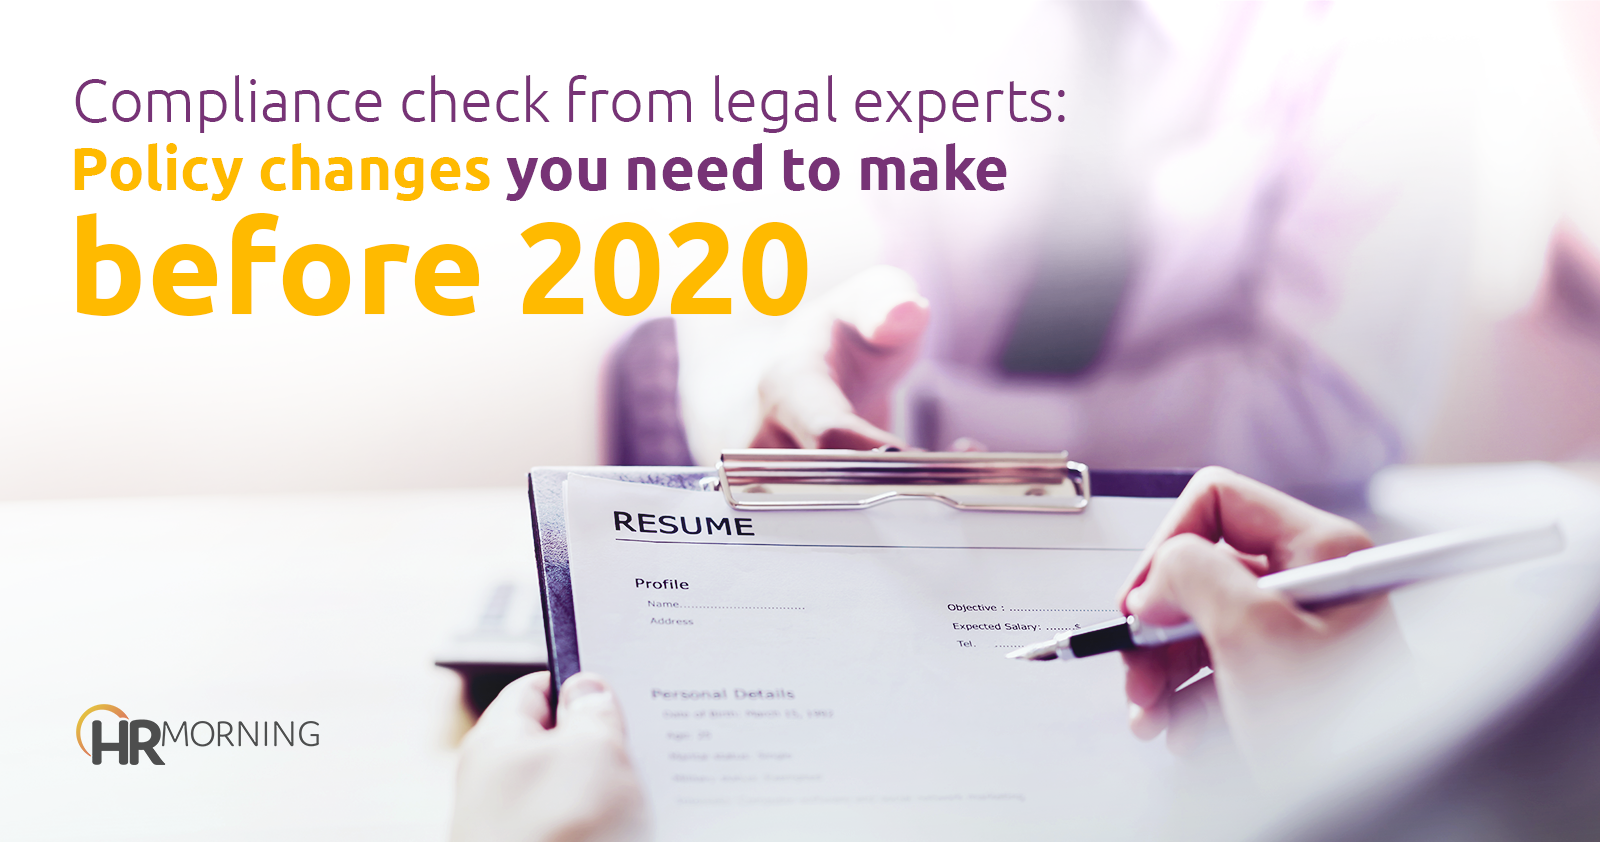 compliance check from legal experts policy changes to make before 2020